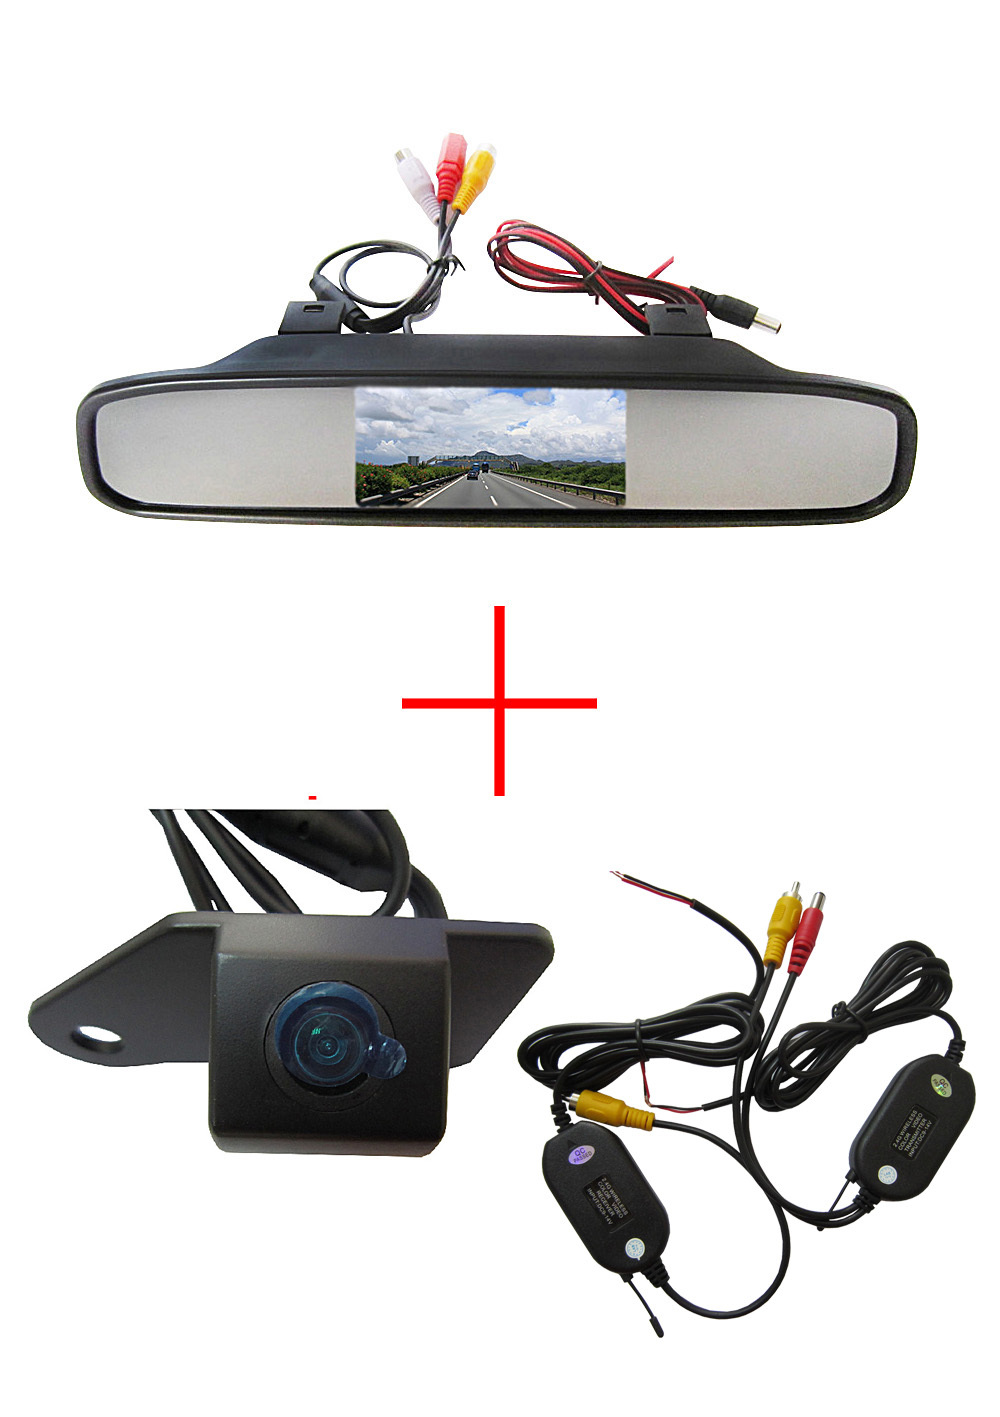 Wireless Color CCD Chip Car Rear View Camera for Mitsubishi ASX RVR/Outlander Sport + 4.3 Inch rear view Mirror Monitor wireless color ccd chip car rear view camera for kia sorento sportage 4 3 inch foldable lcd tft monitor